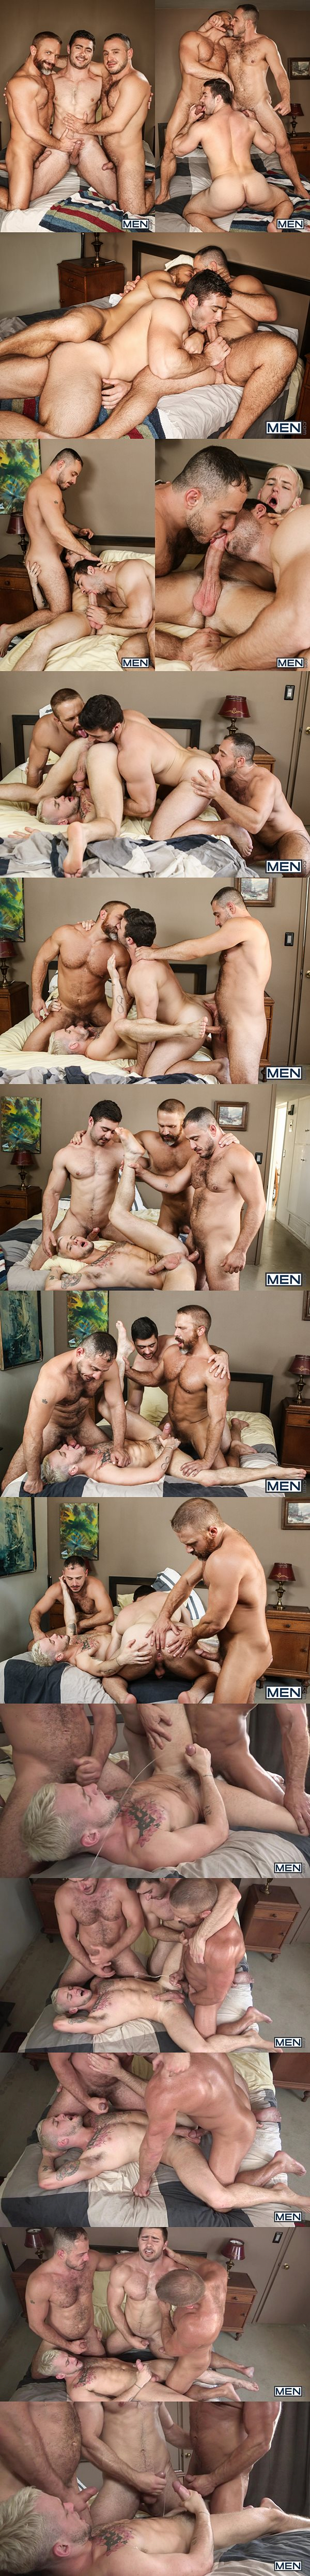 Derek Bolt, Dirk Caber, Marc Giacomo fuck Colton Grey in Hairy Tales Part 3 at Jizzorgy 02